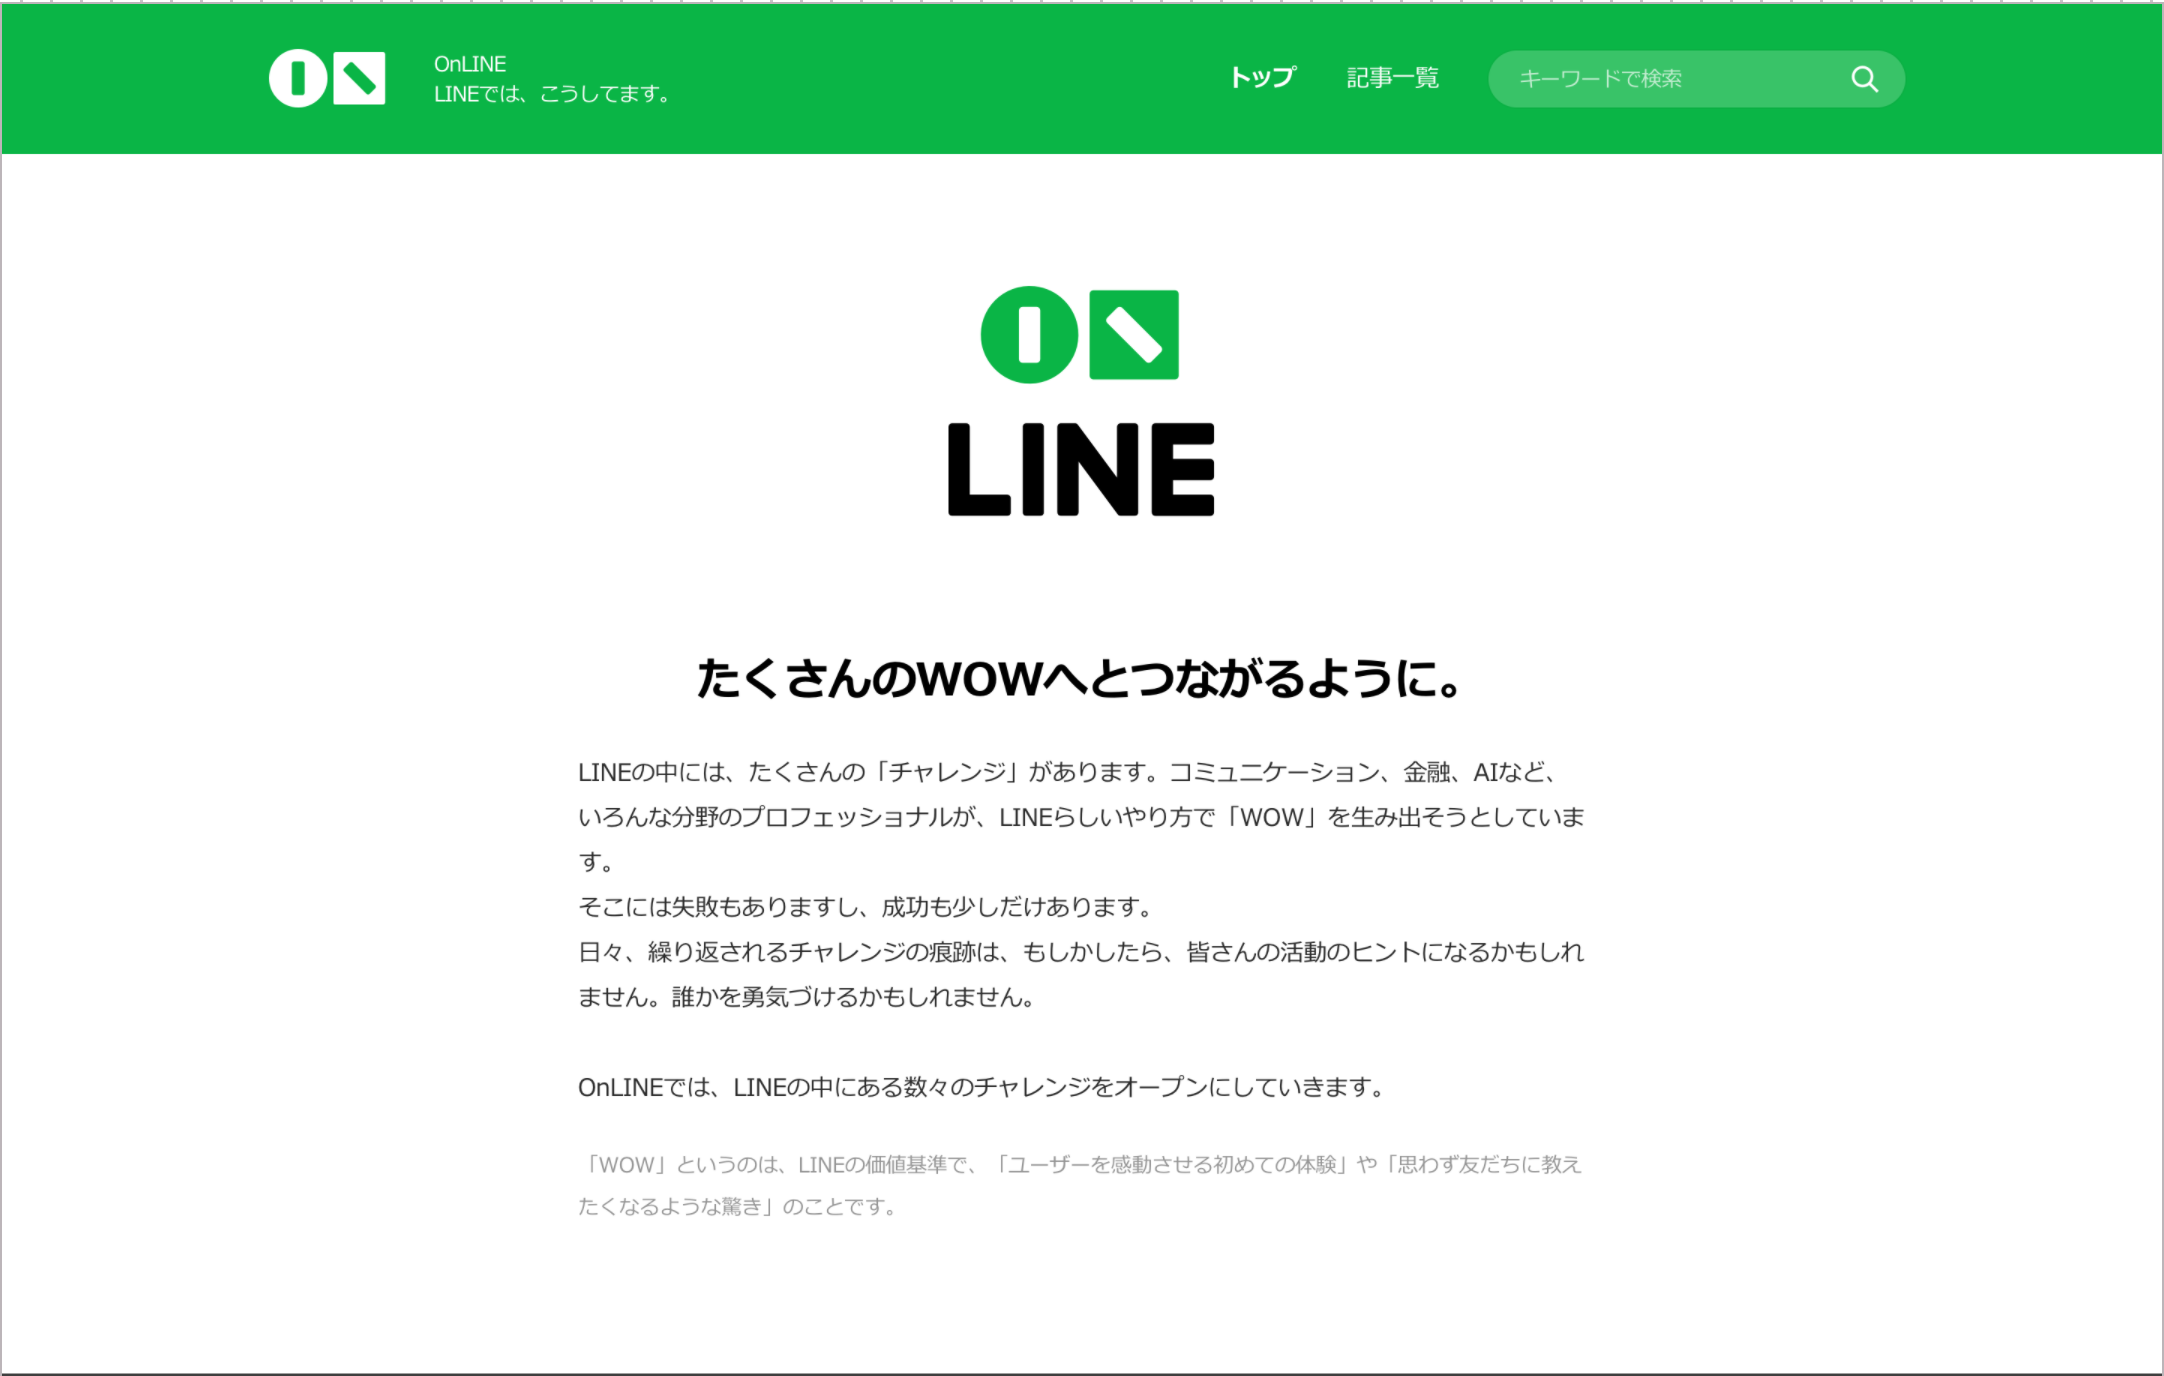 about_online